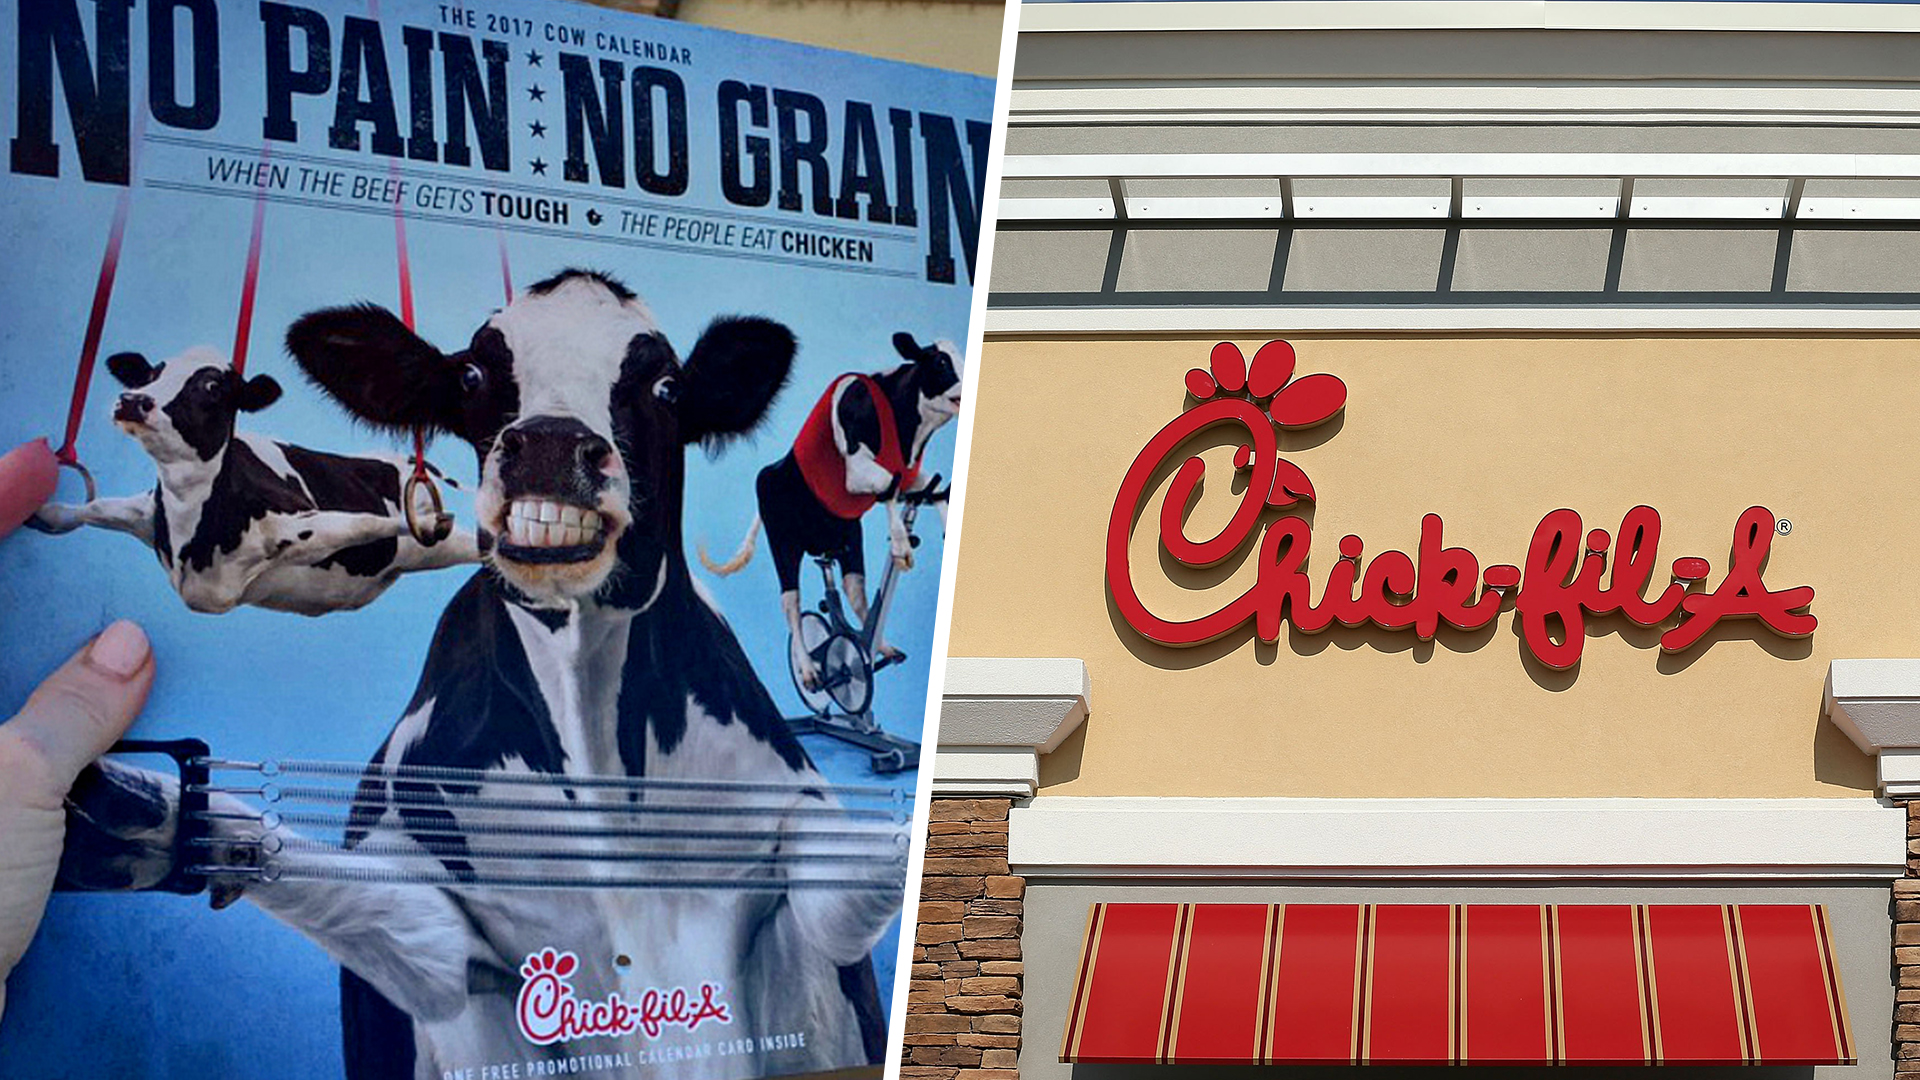 Chick Fil A 2019 Cow Calendar February Chick fil A is retiring its cow calendar and interis mad